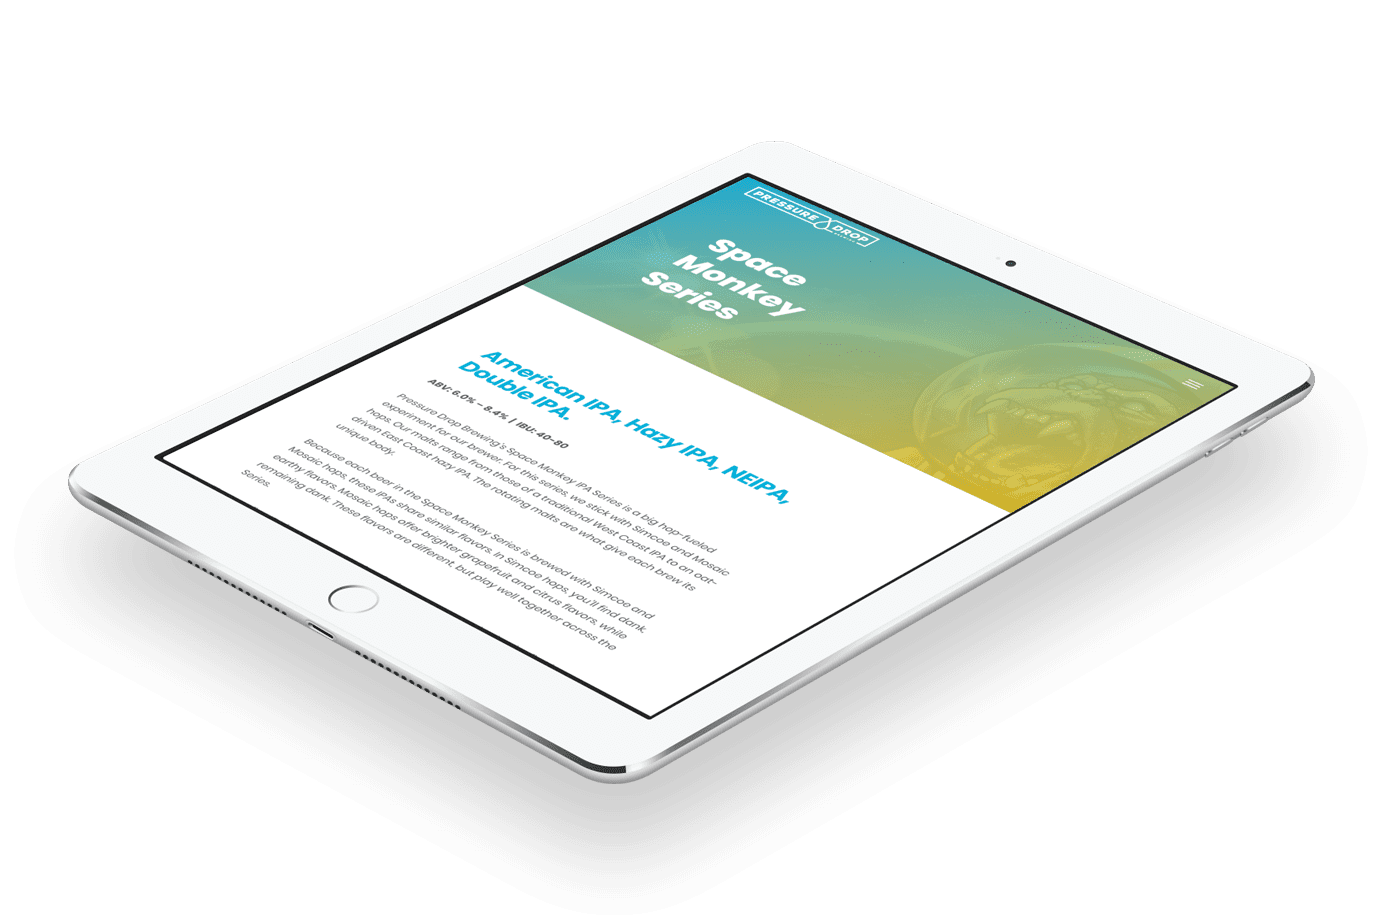 Pressure Drop Brewing optimized website content preview on tablet